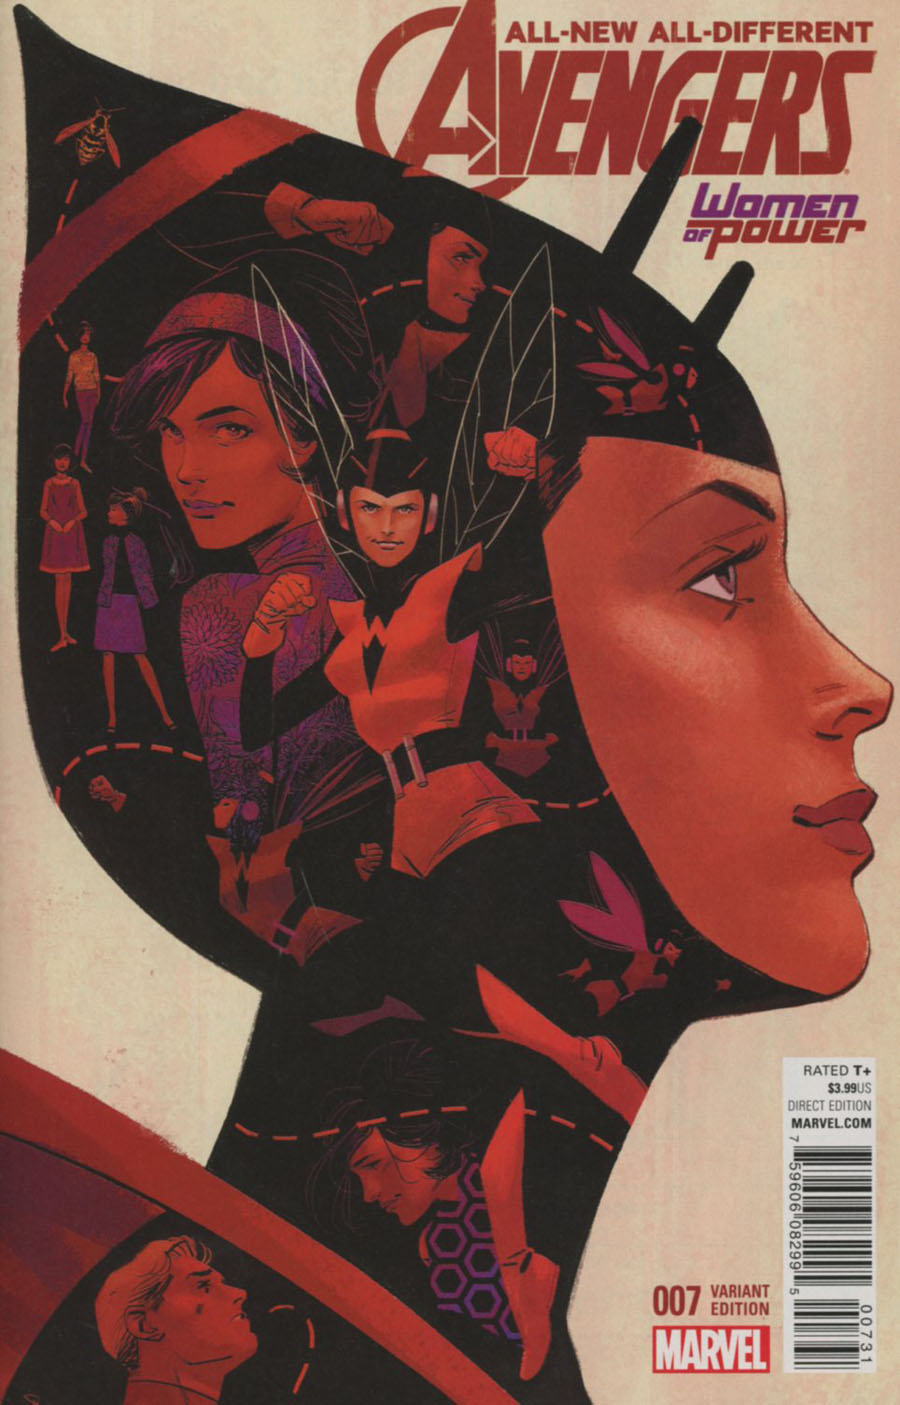 All-New All-Different Avengers #7 Cover B Variant Women Of Power Cover (Standoff Tie-In)